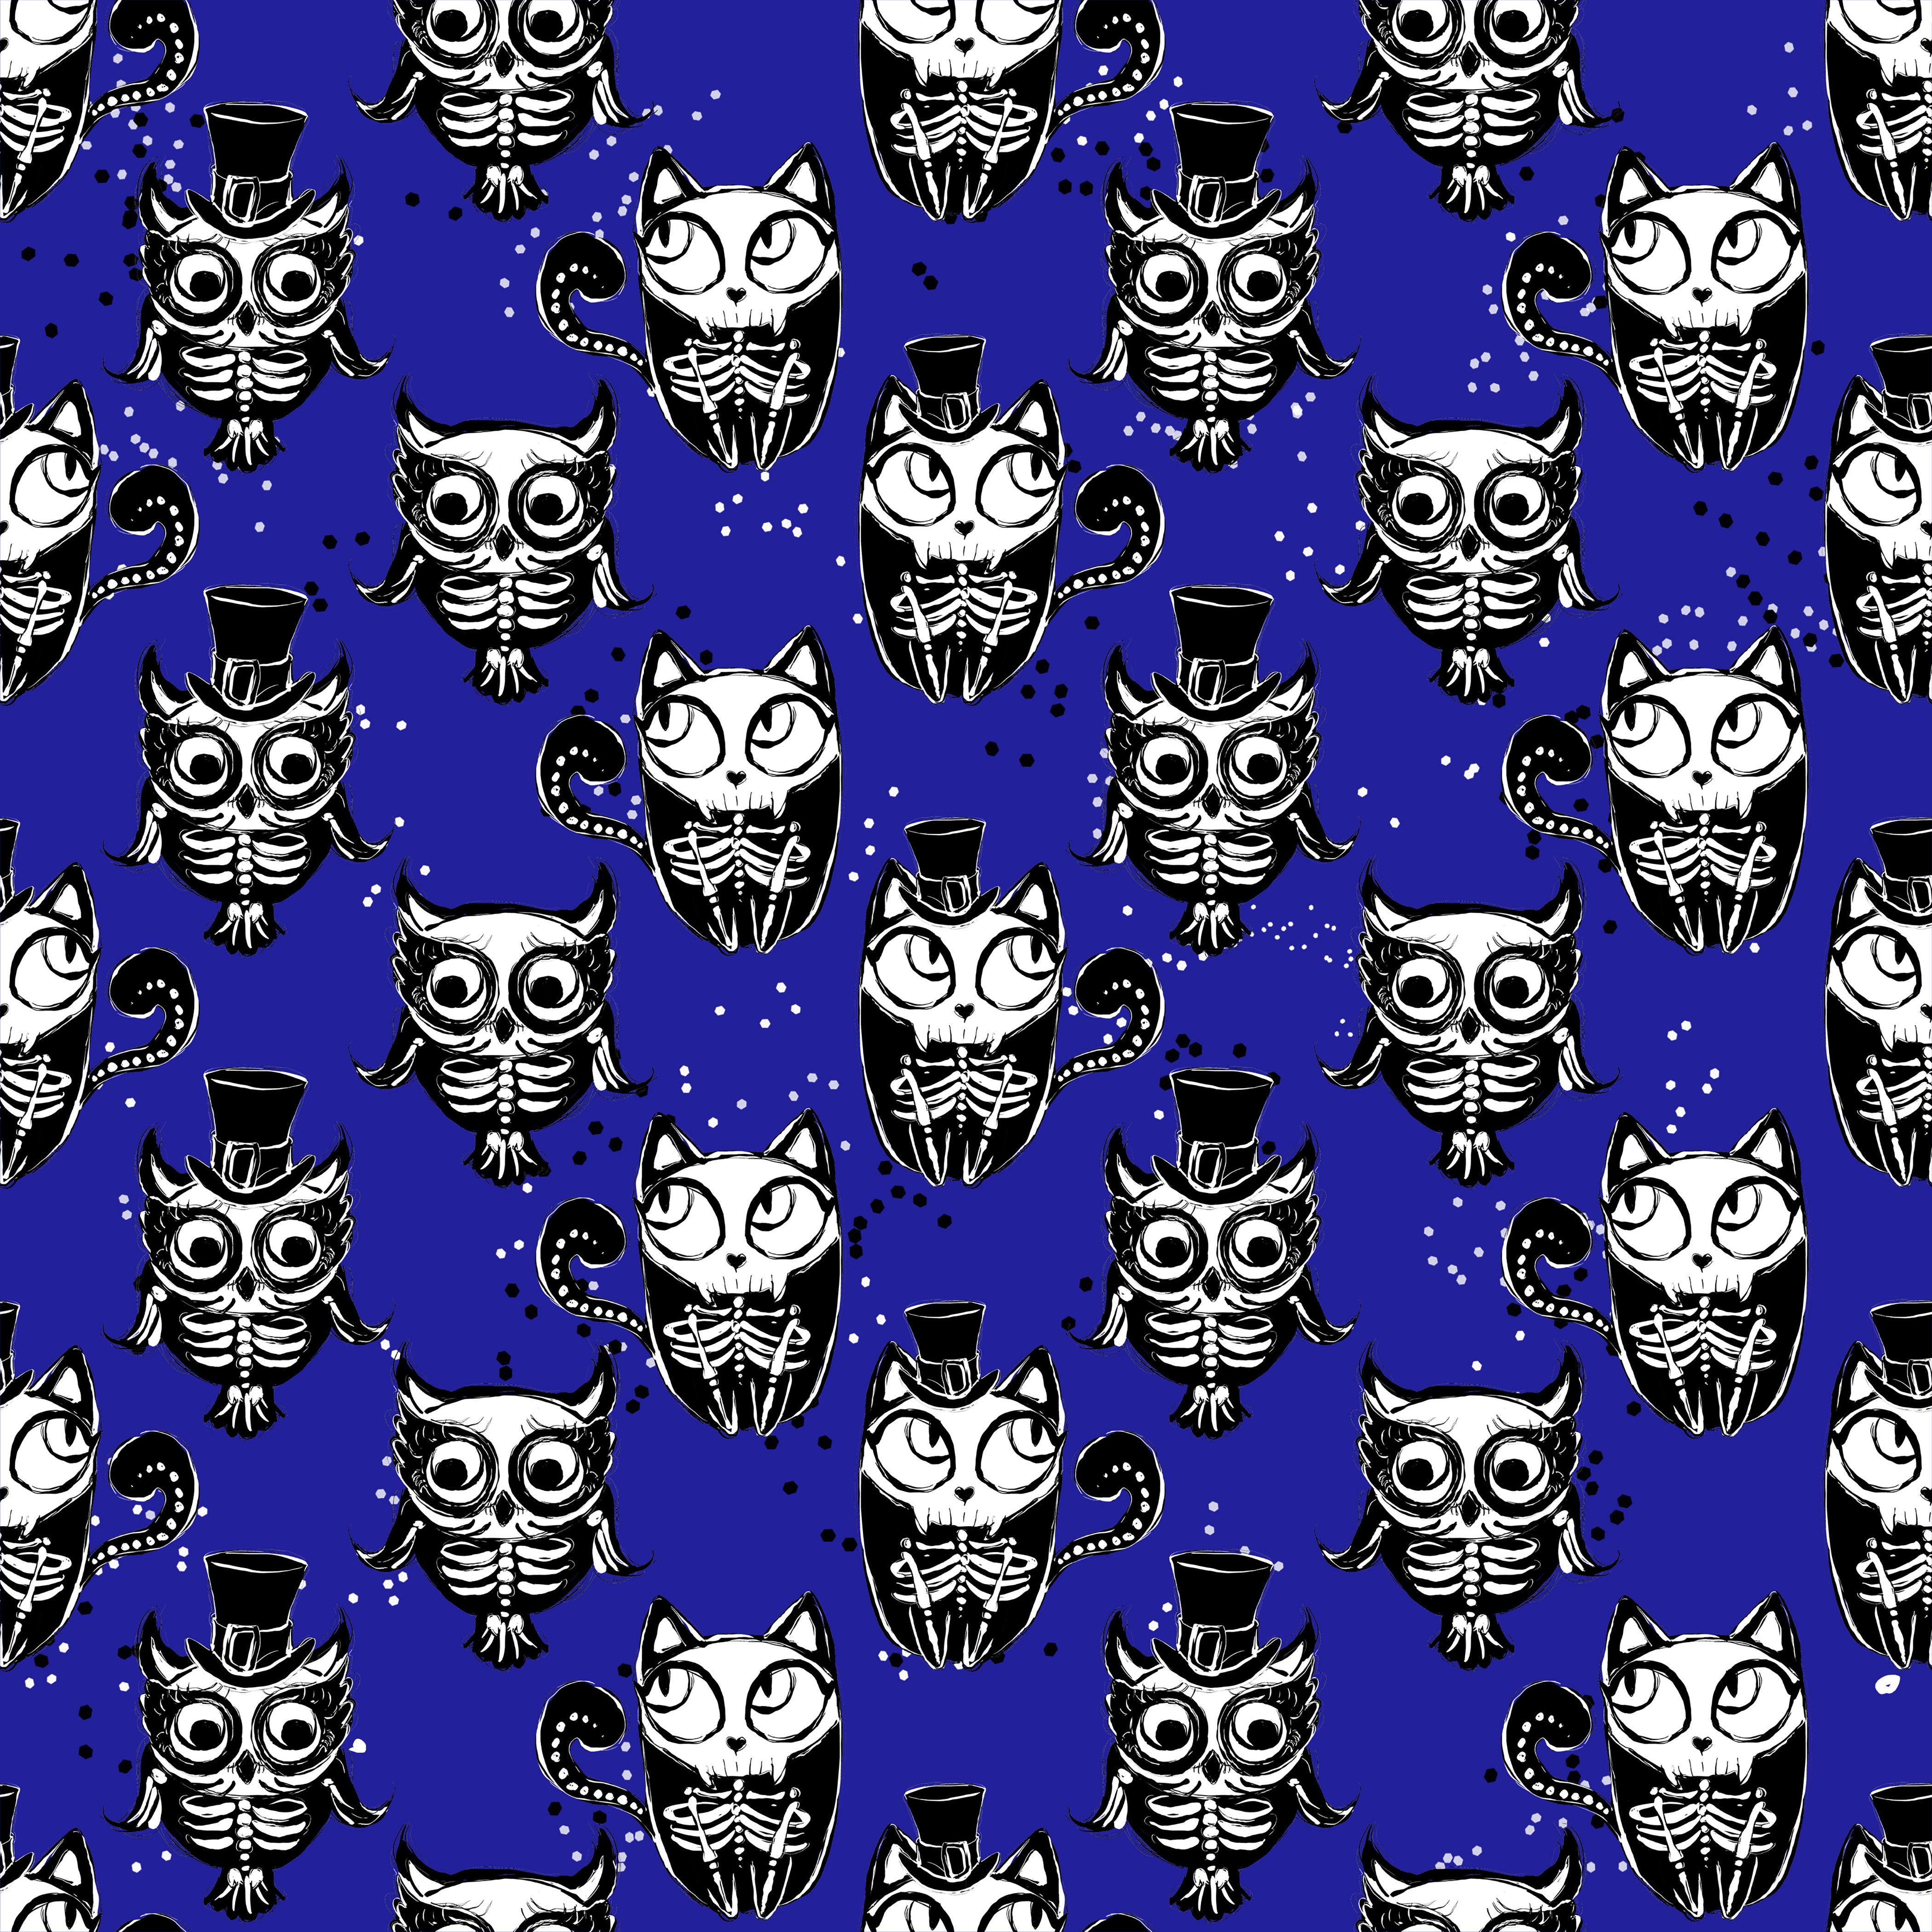 Goth - Animals on Blue - Jersey Knit